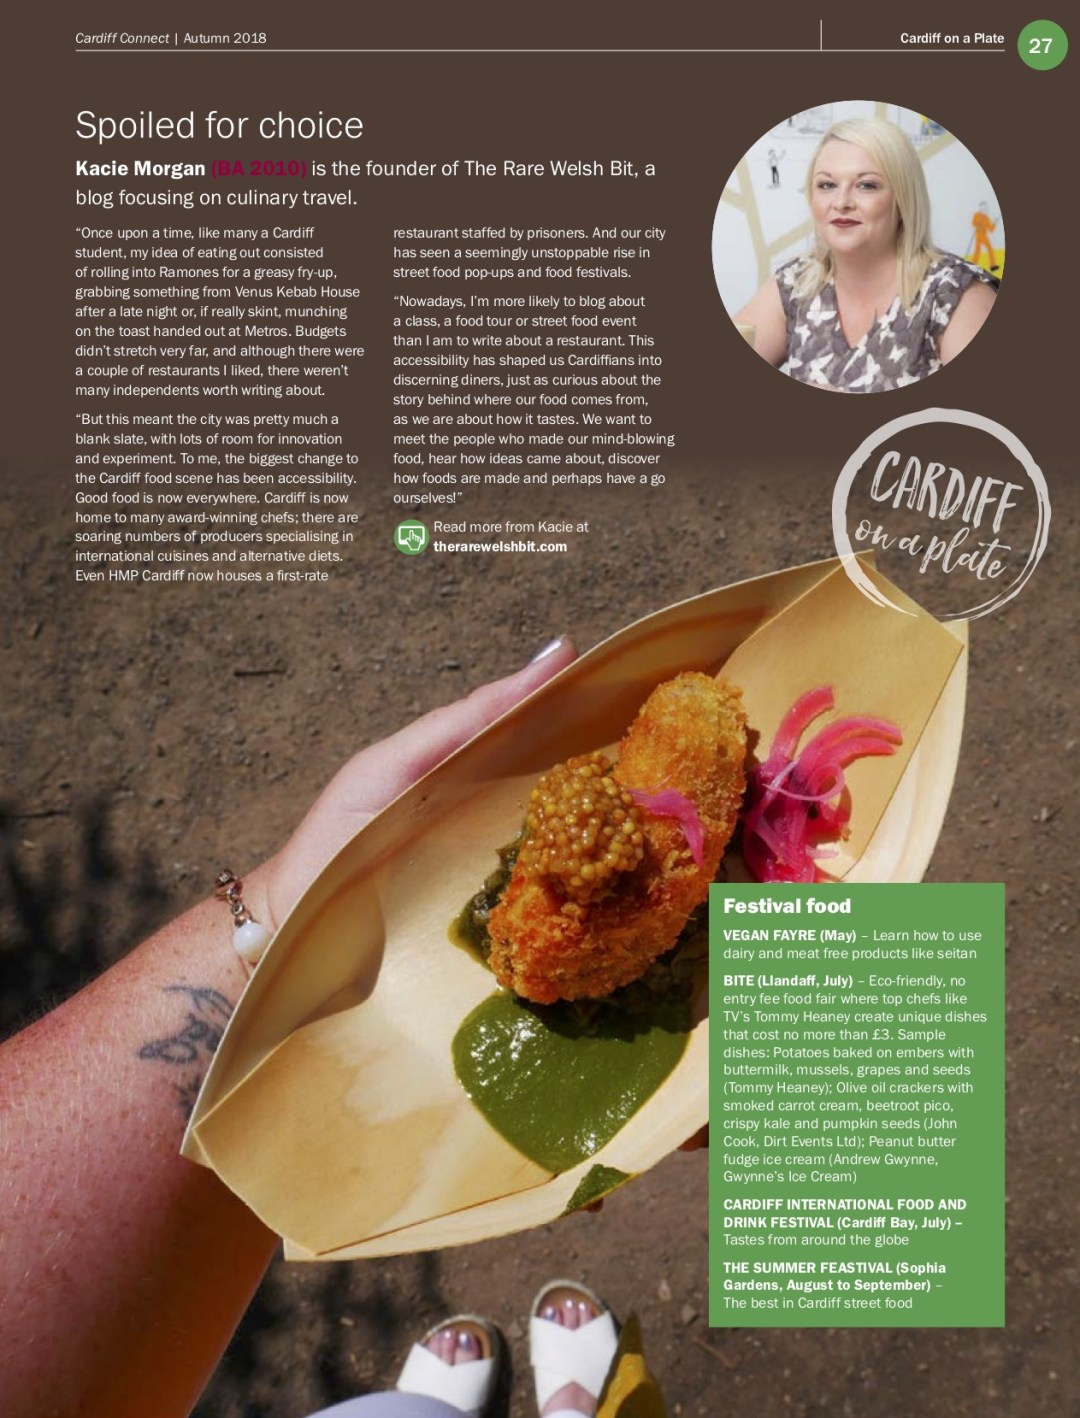 Food and travel blogger, Kacie Morgan features within 'Cardiff on a Plate': an article published in Cardiff University's alumni magazine, Cardiff Connect in December 2018.